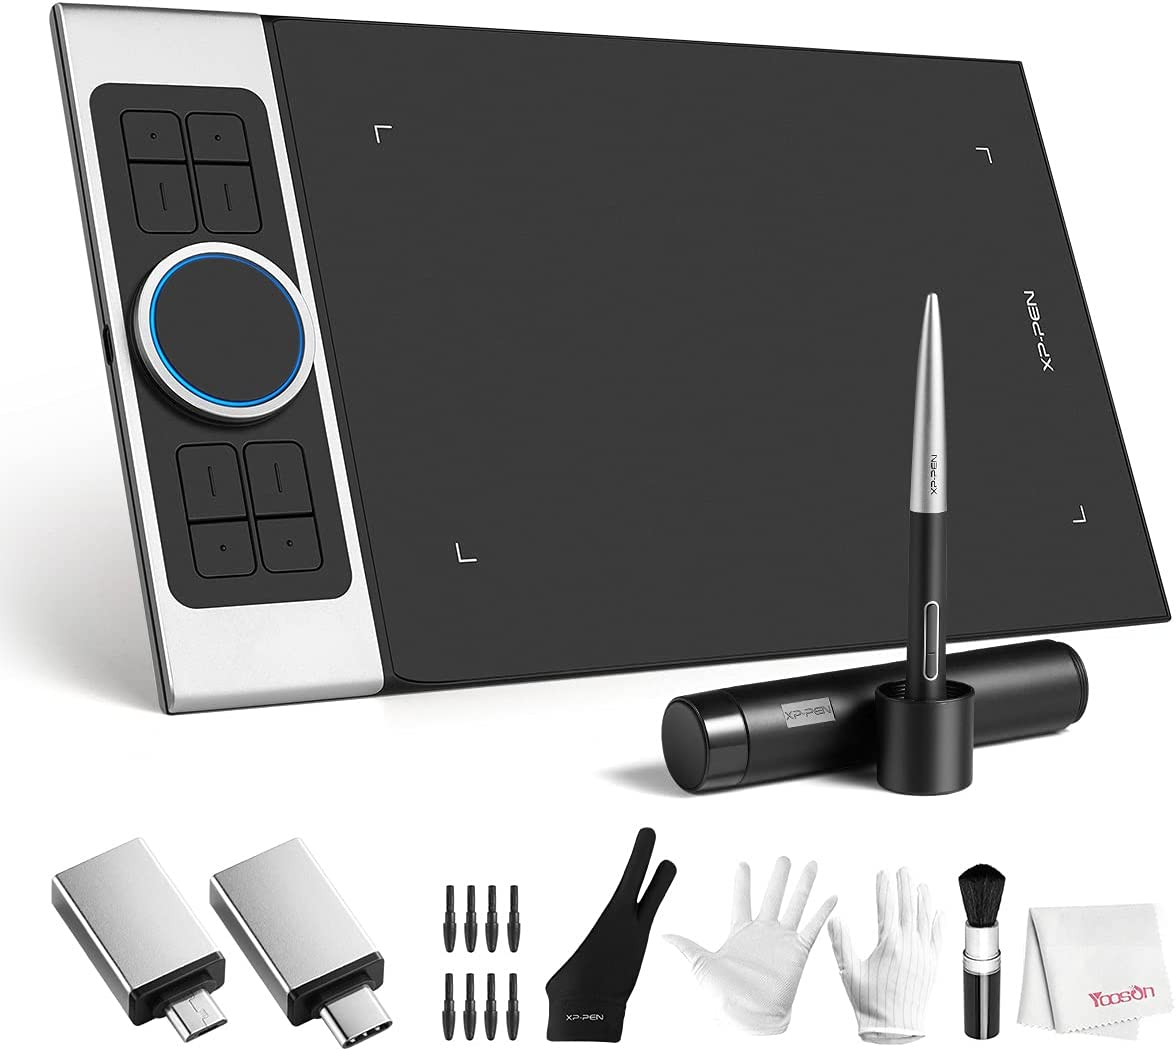 XP-PEN Deco Pro Medium Drawing Tablet, 11x6 Inch Ultrathin Graphics Tablet with Tilt Function, 8 Shortcut Keys, Battery-Free Stylus 8192 Pen Pressure, for Windows 10/8/7, Mac OS, Android 6.0